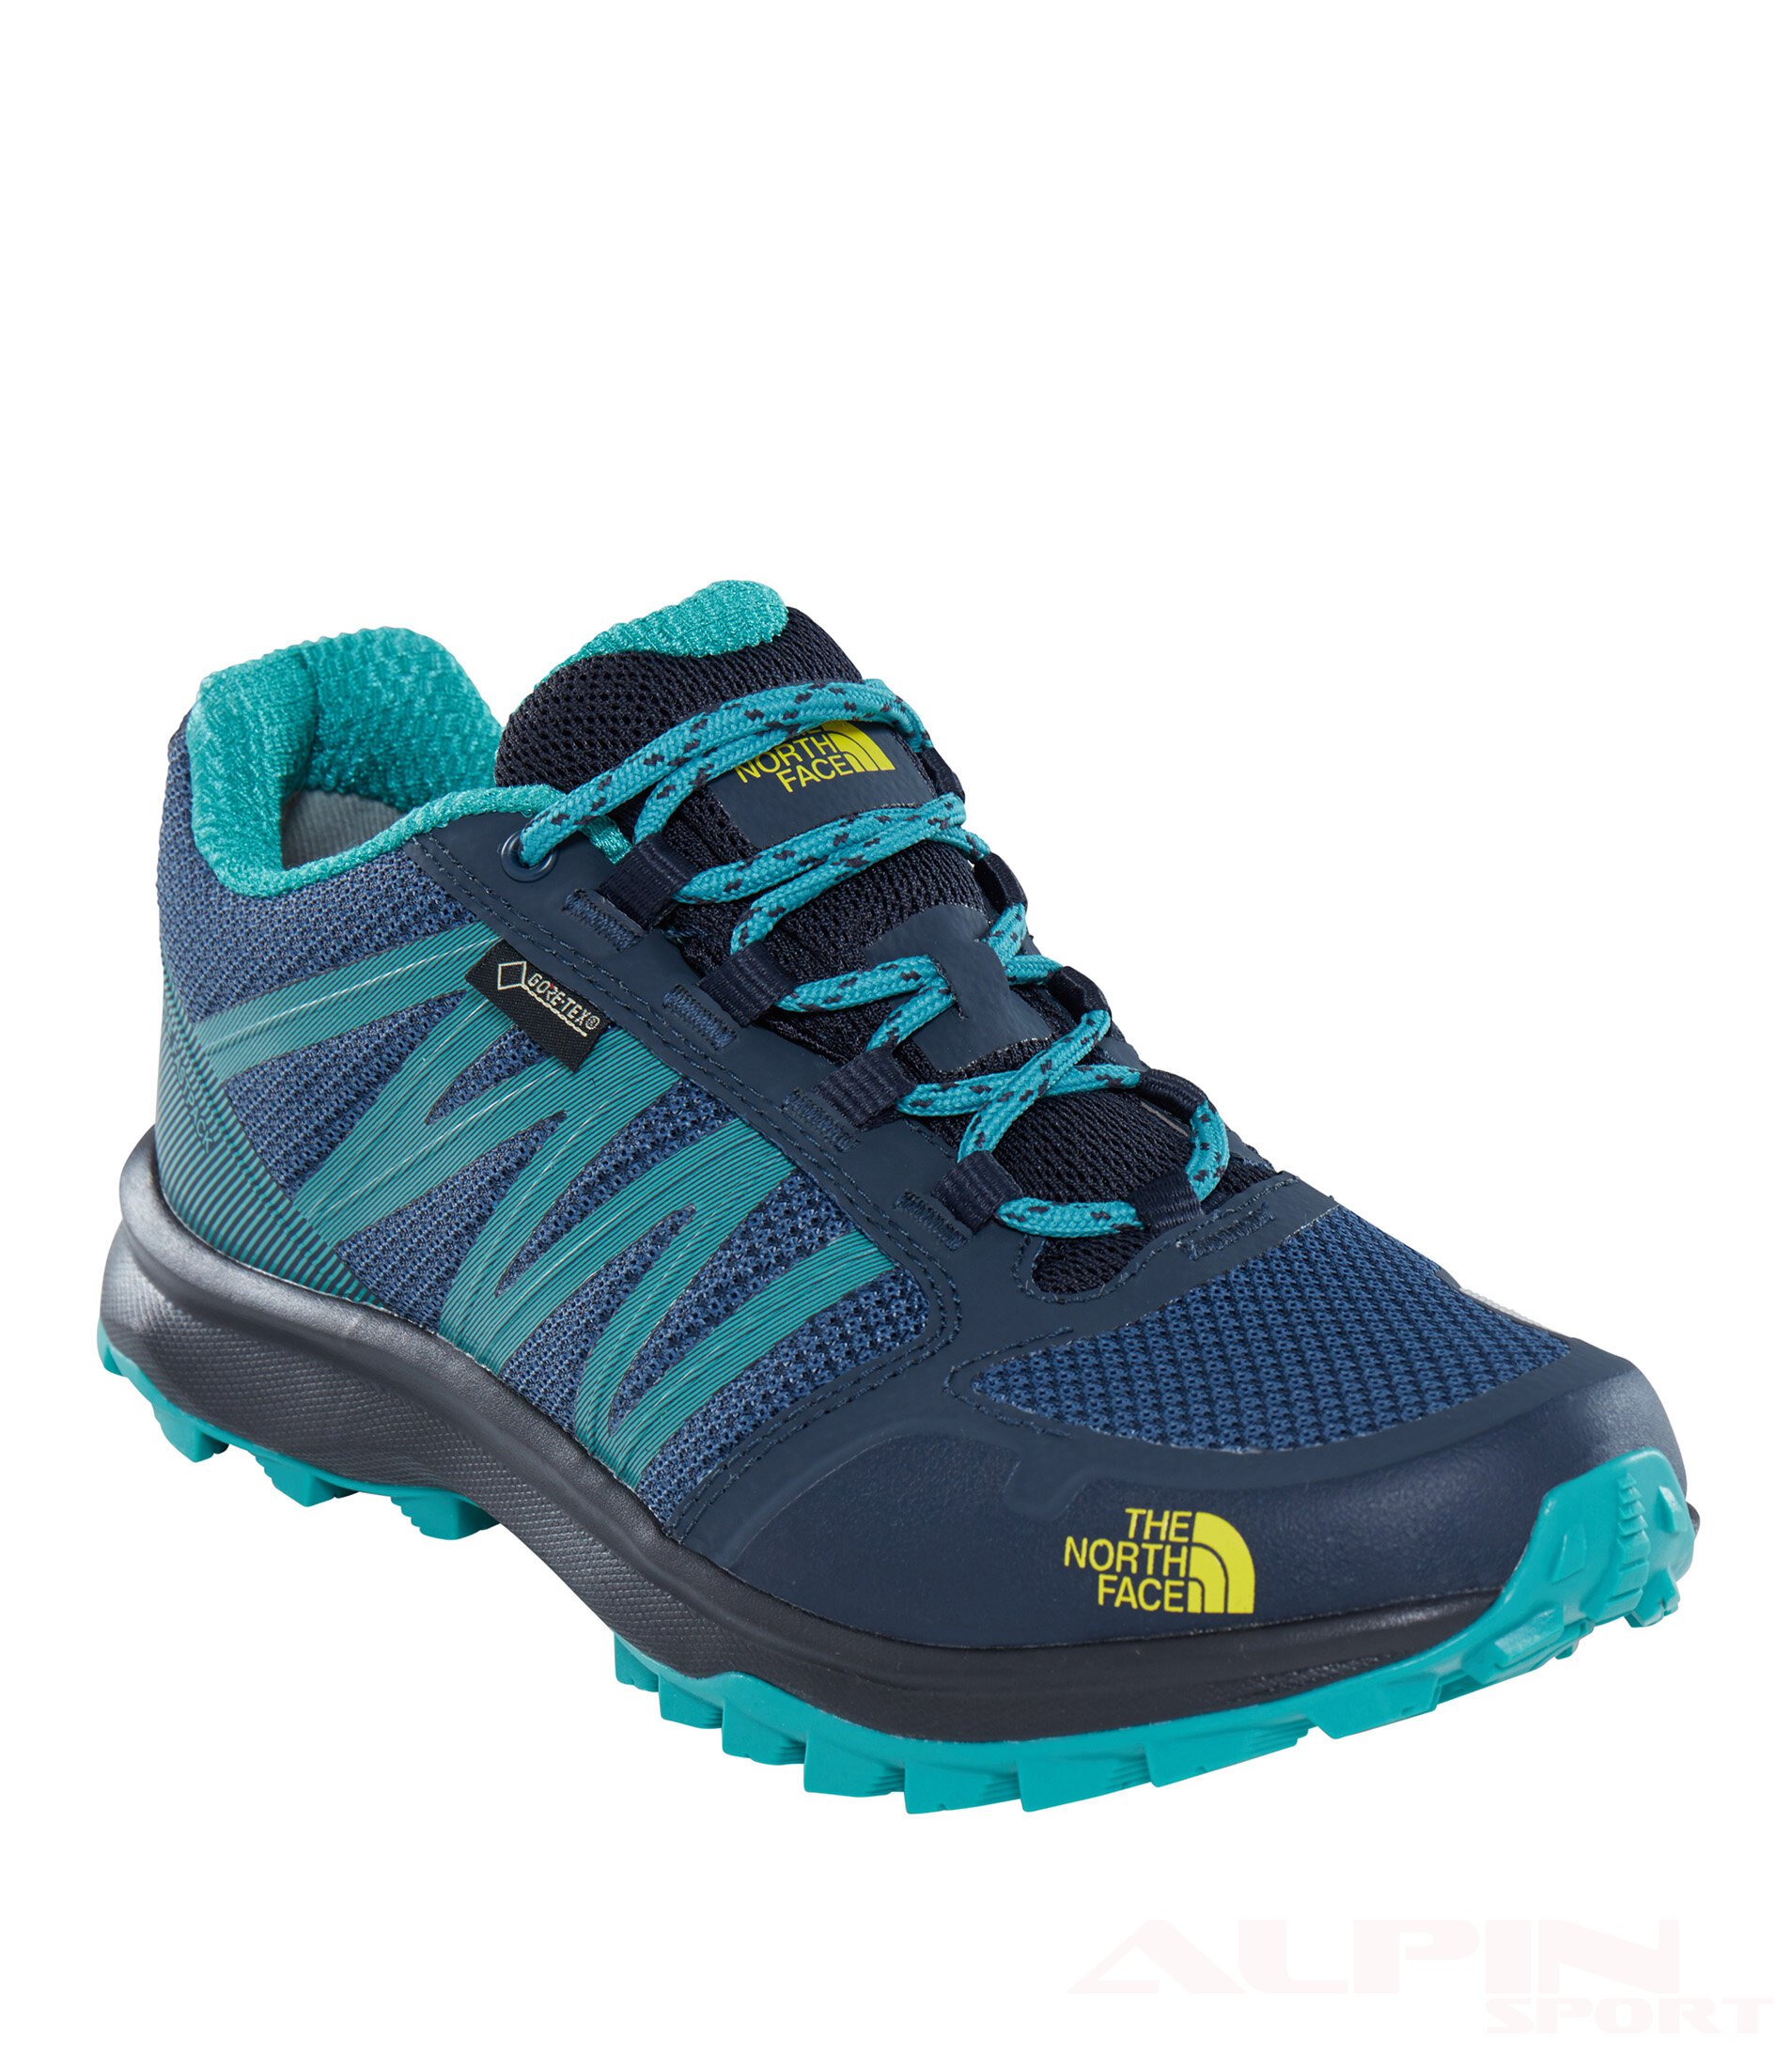 Buty damskie THE NORTH FACE Litewave Fastpack GTX 023_LO_3FX5 4GQ 3